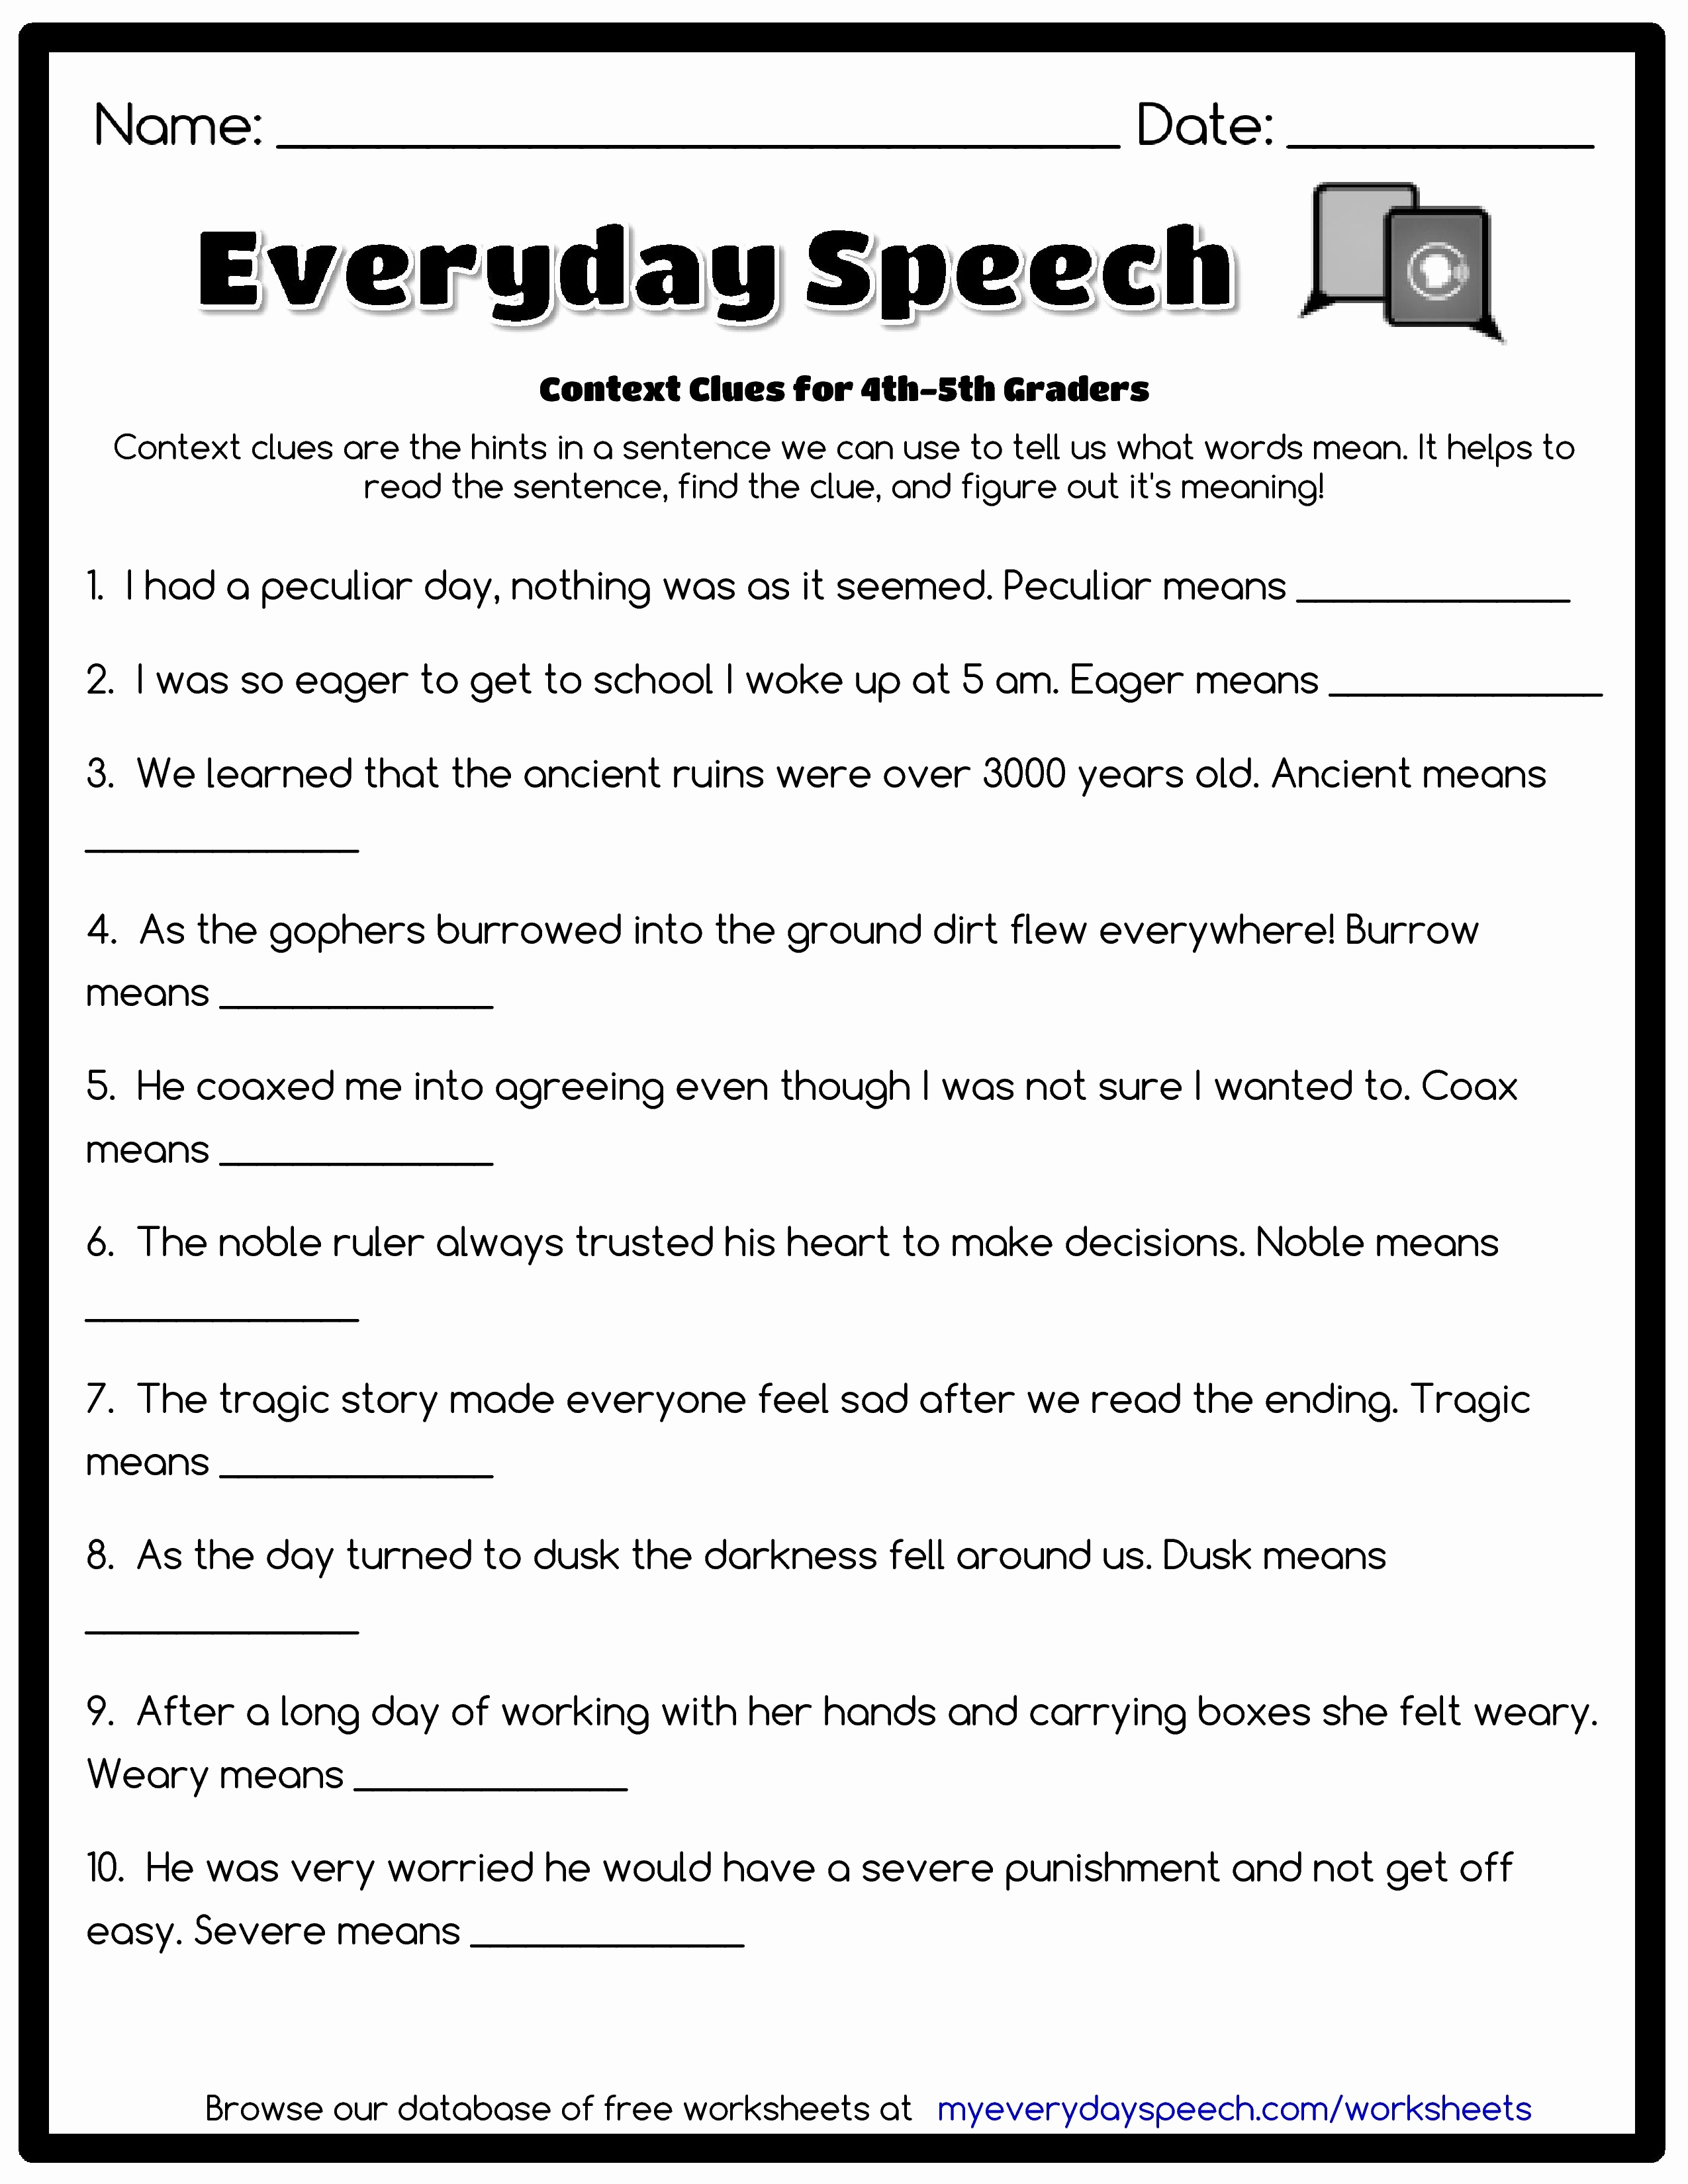 Saved Free Printable English Grammar Worksheets For Grade